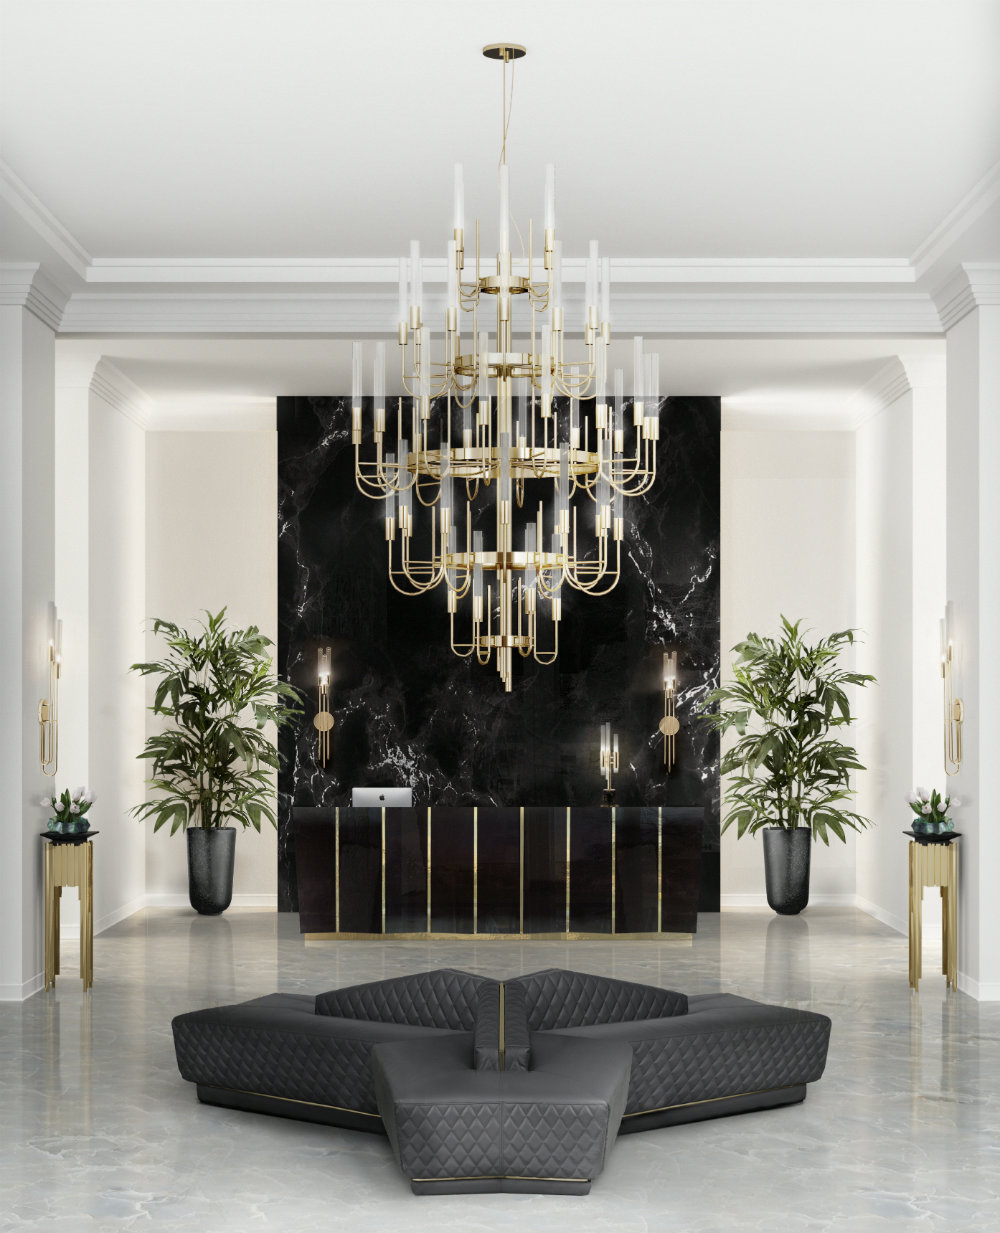 Here Is Why You Need These Amazing Chandeliers For Your Entryway entryway Here Is Why You Need These Amazing Chandeliers For Your Entryway Here Is Why You Need These Amazing Chandeliers For Your Entryway 4